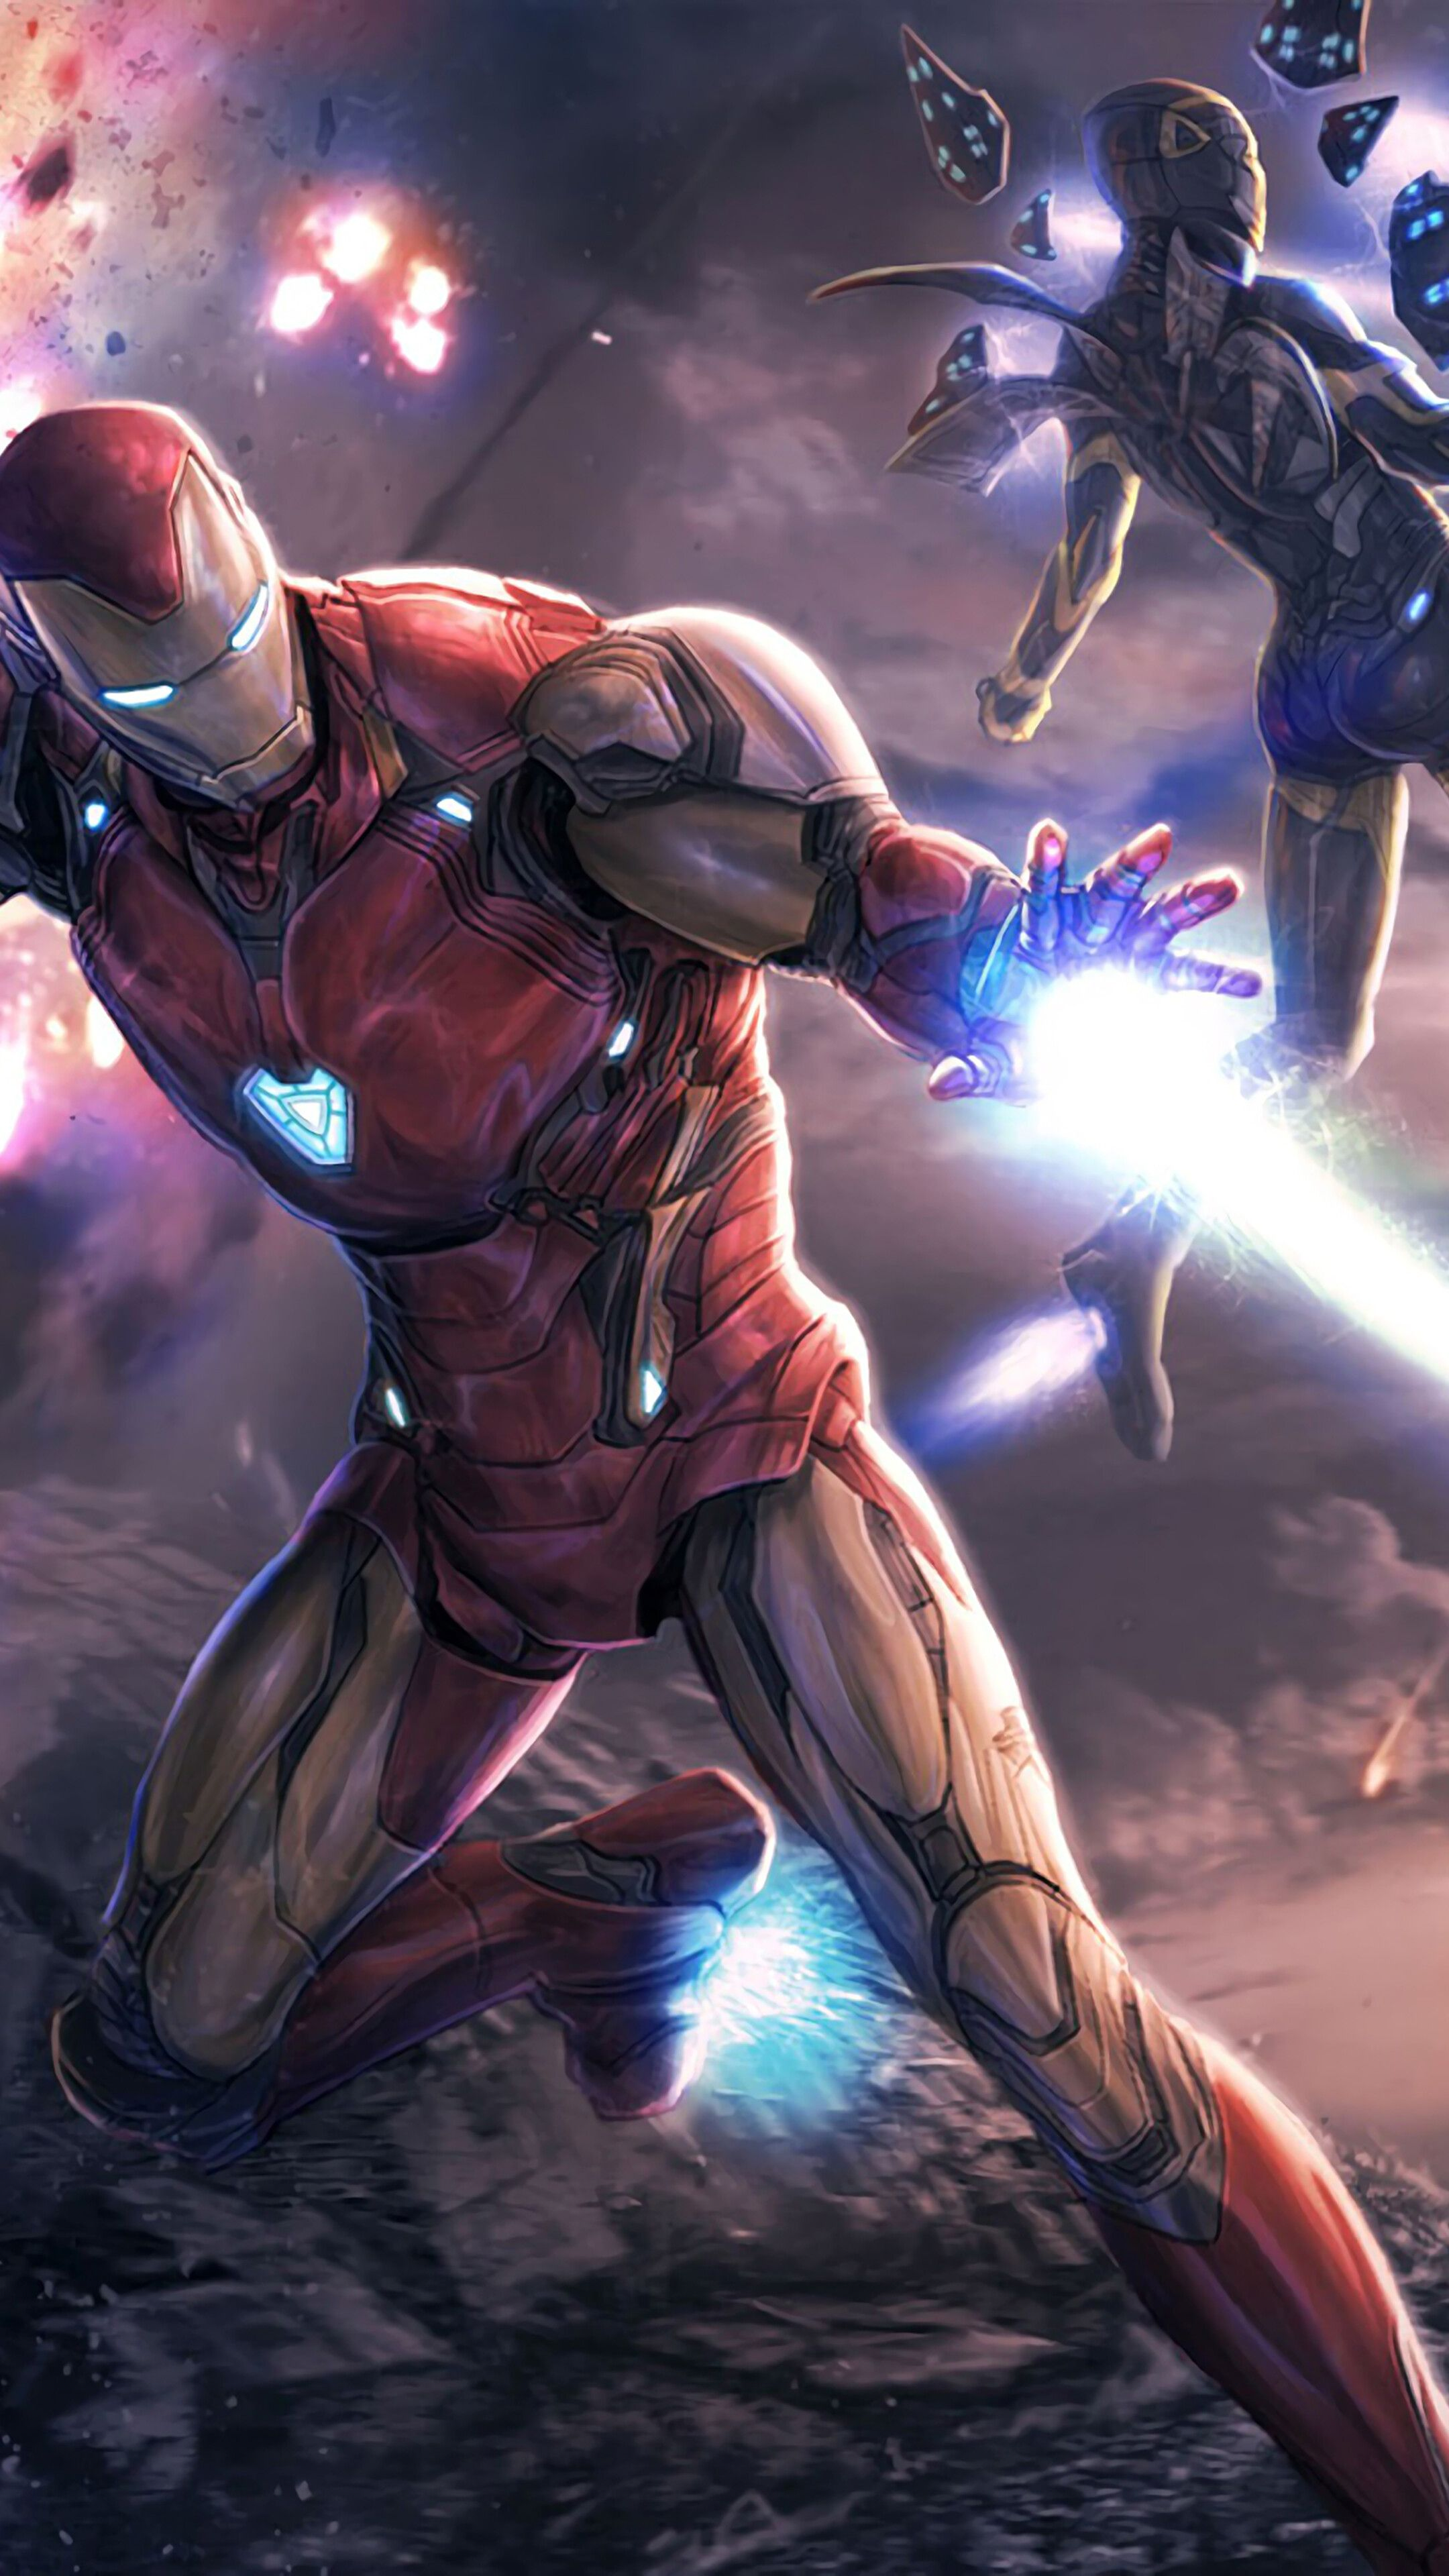 Iron Man Iron Rescue Avengers Endgame 4k Iphone 10 7 6s 6 Hd Wallpapers Images Backgrounds Photos And Pic Iron Man Poster Iron Man Art Iron Man Wallpaper